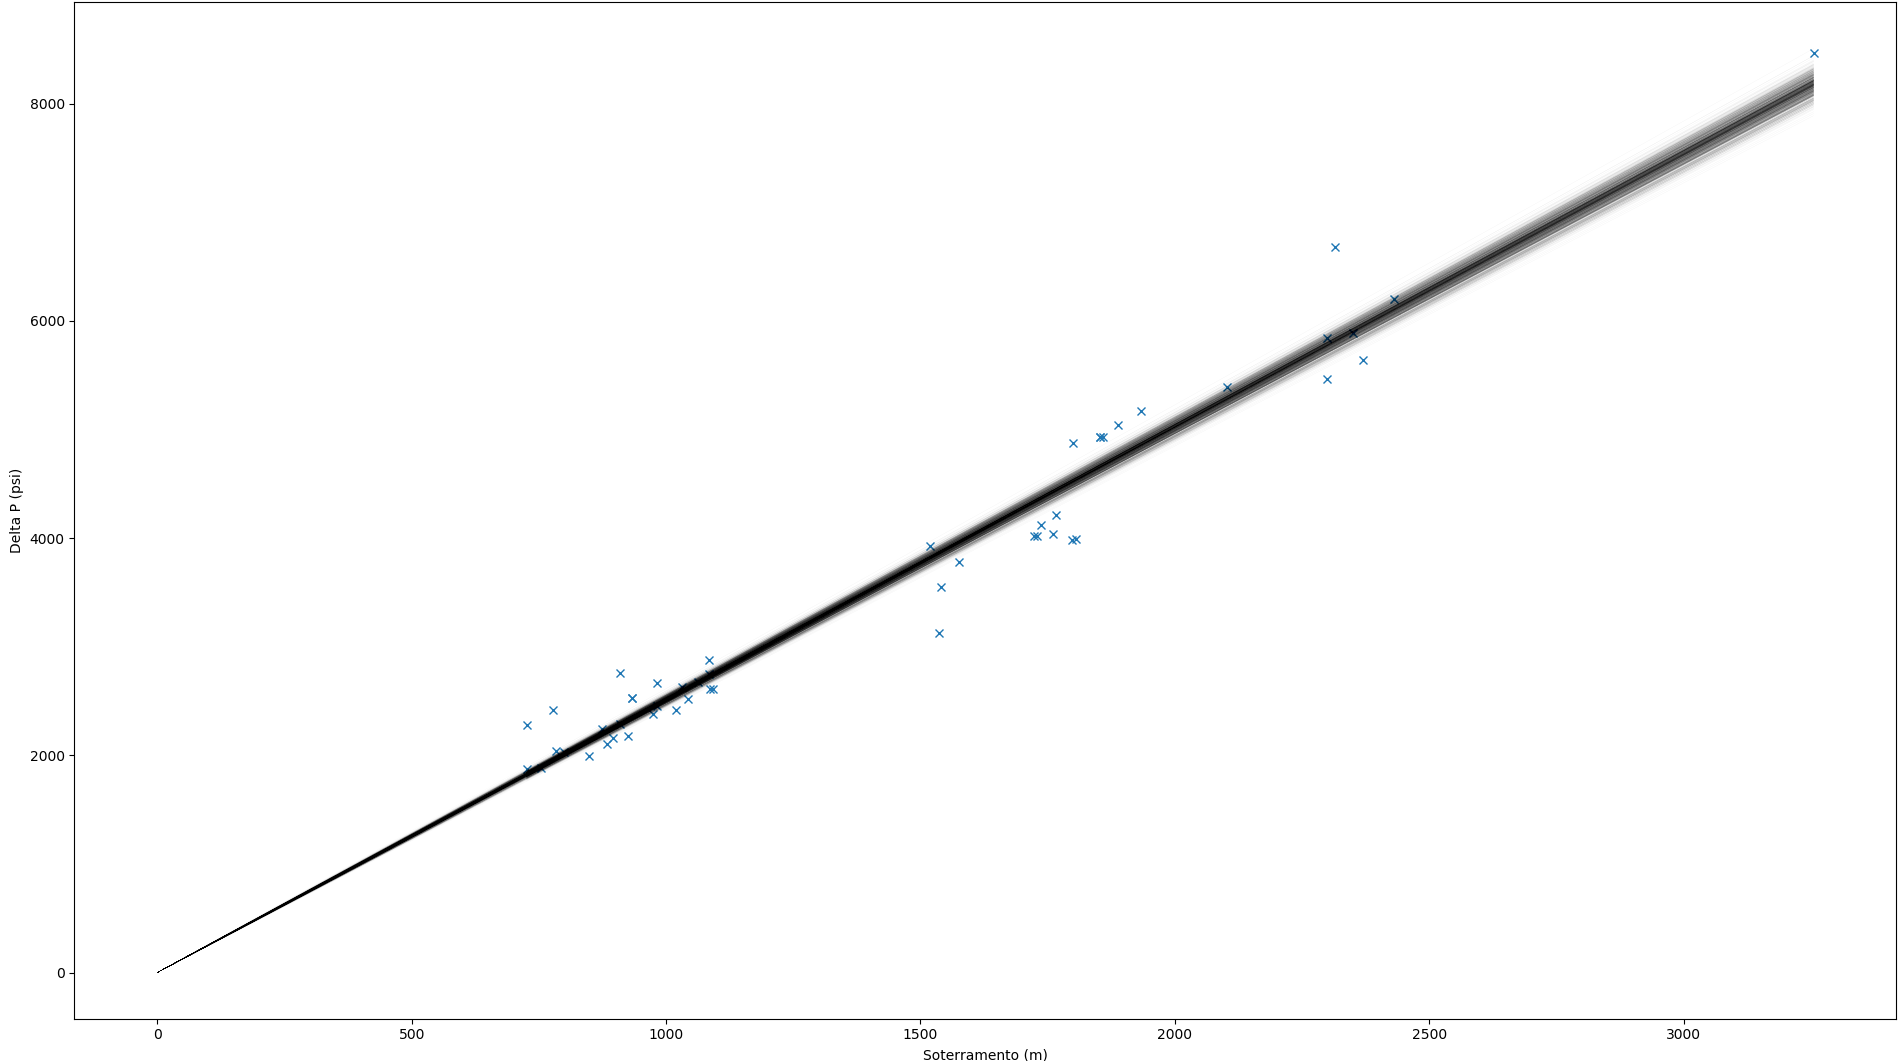 Posterior Predictive Regression Lines In Bayesian Linear Regression Seem To Exclude Most Data